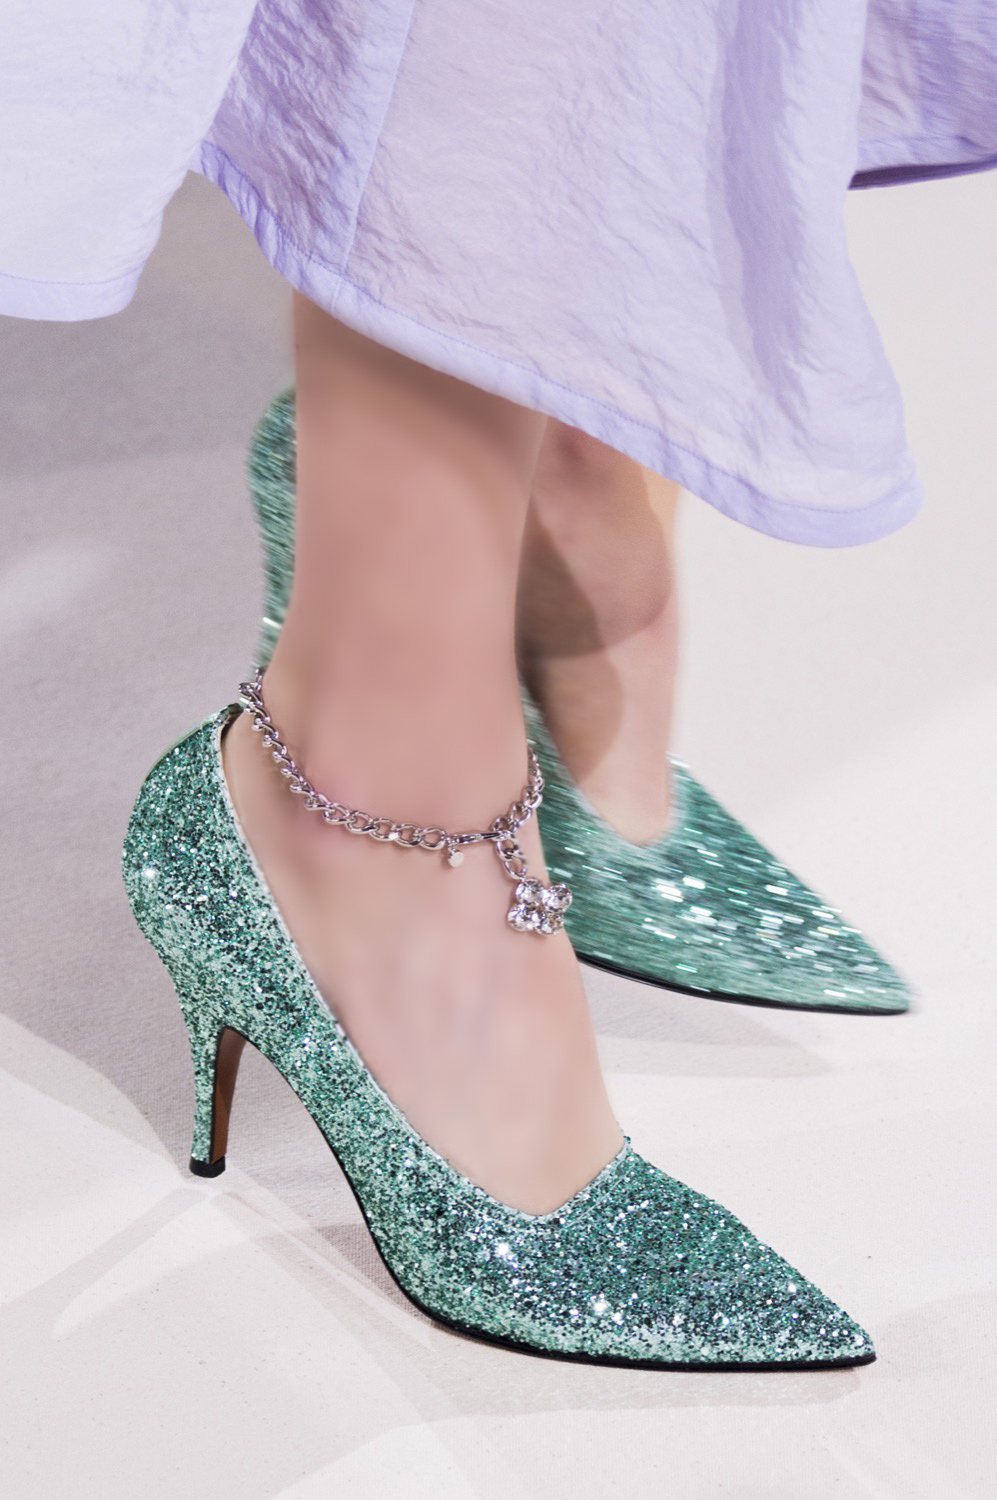 Noughties Trend Alert: The Spring 2018 Runways Say Anklets Are Back